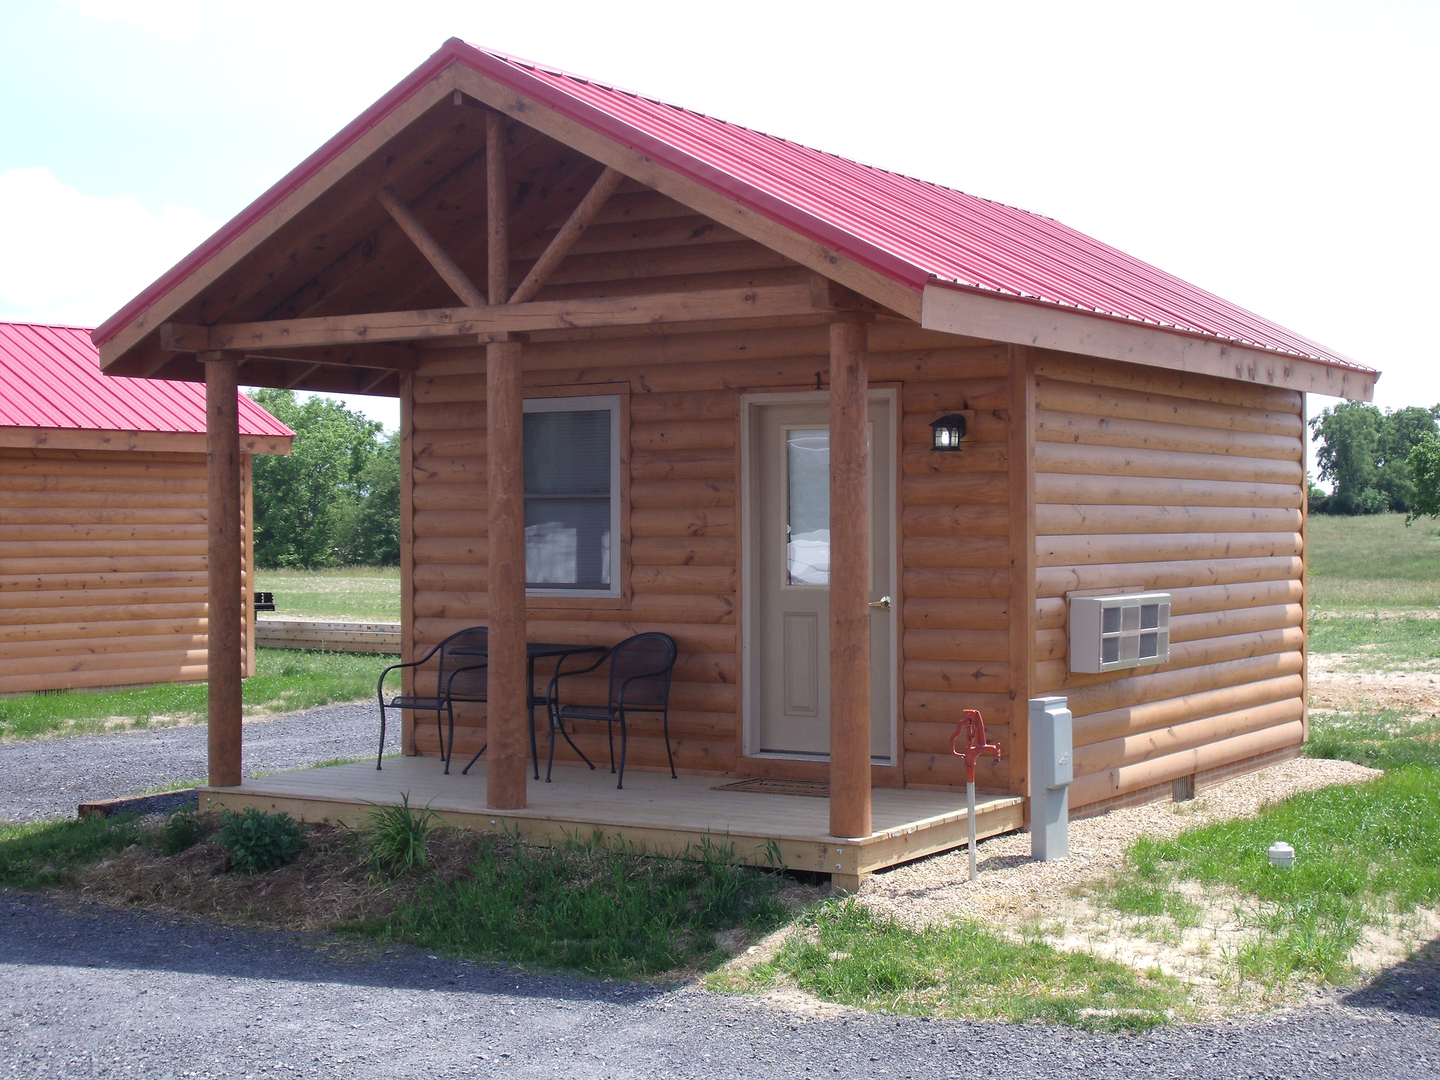 highlands cabins pa to in laurel places stay camping campgrounds